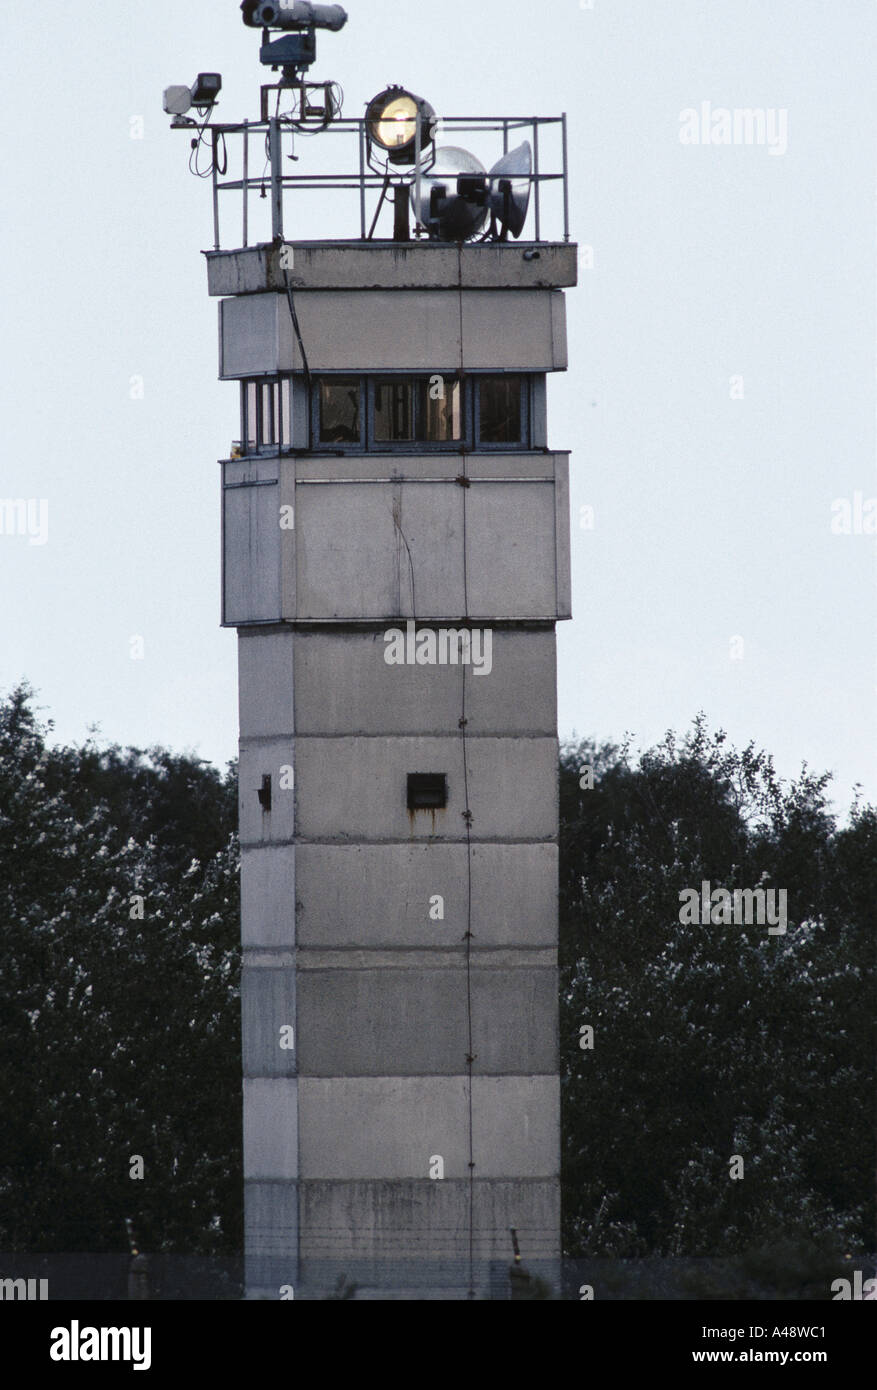 iron curtain north to south concrete ddr observation tower with camera surveillance equipment on top 1989 - Stock Image